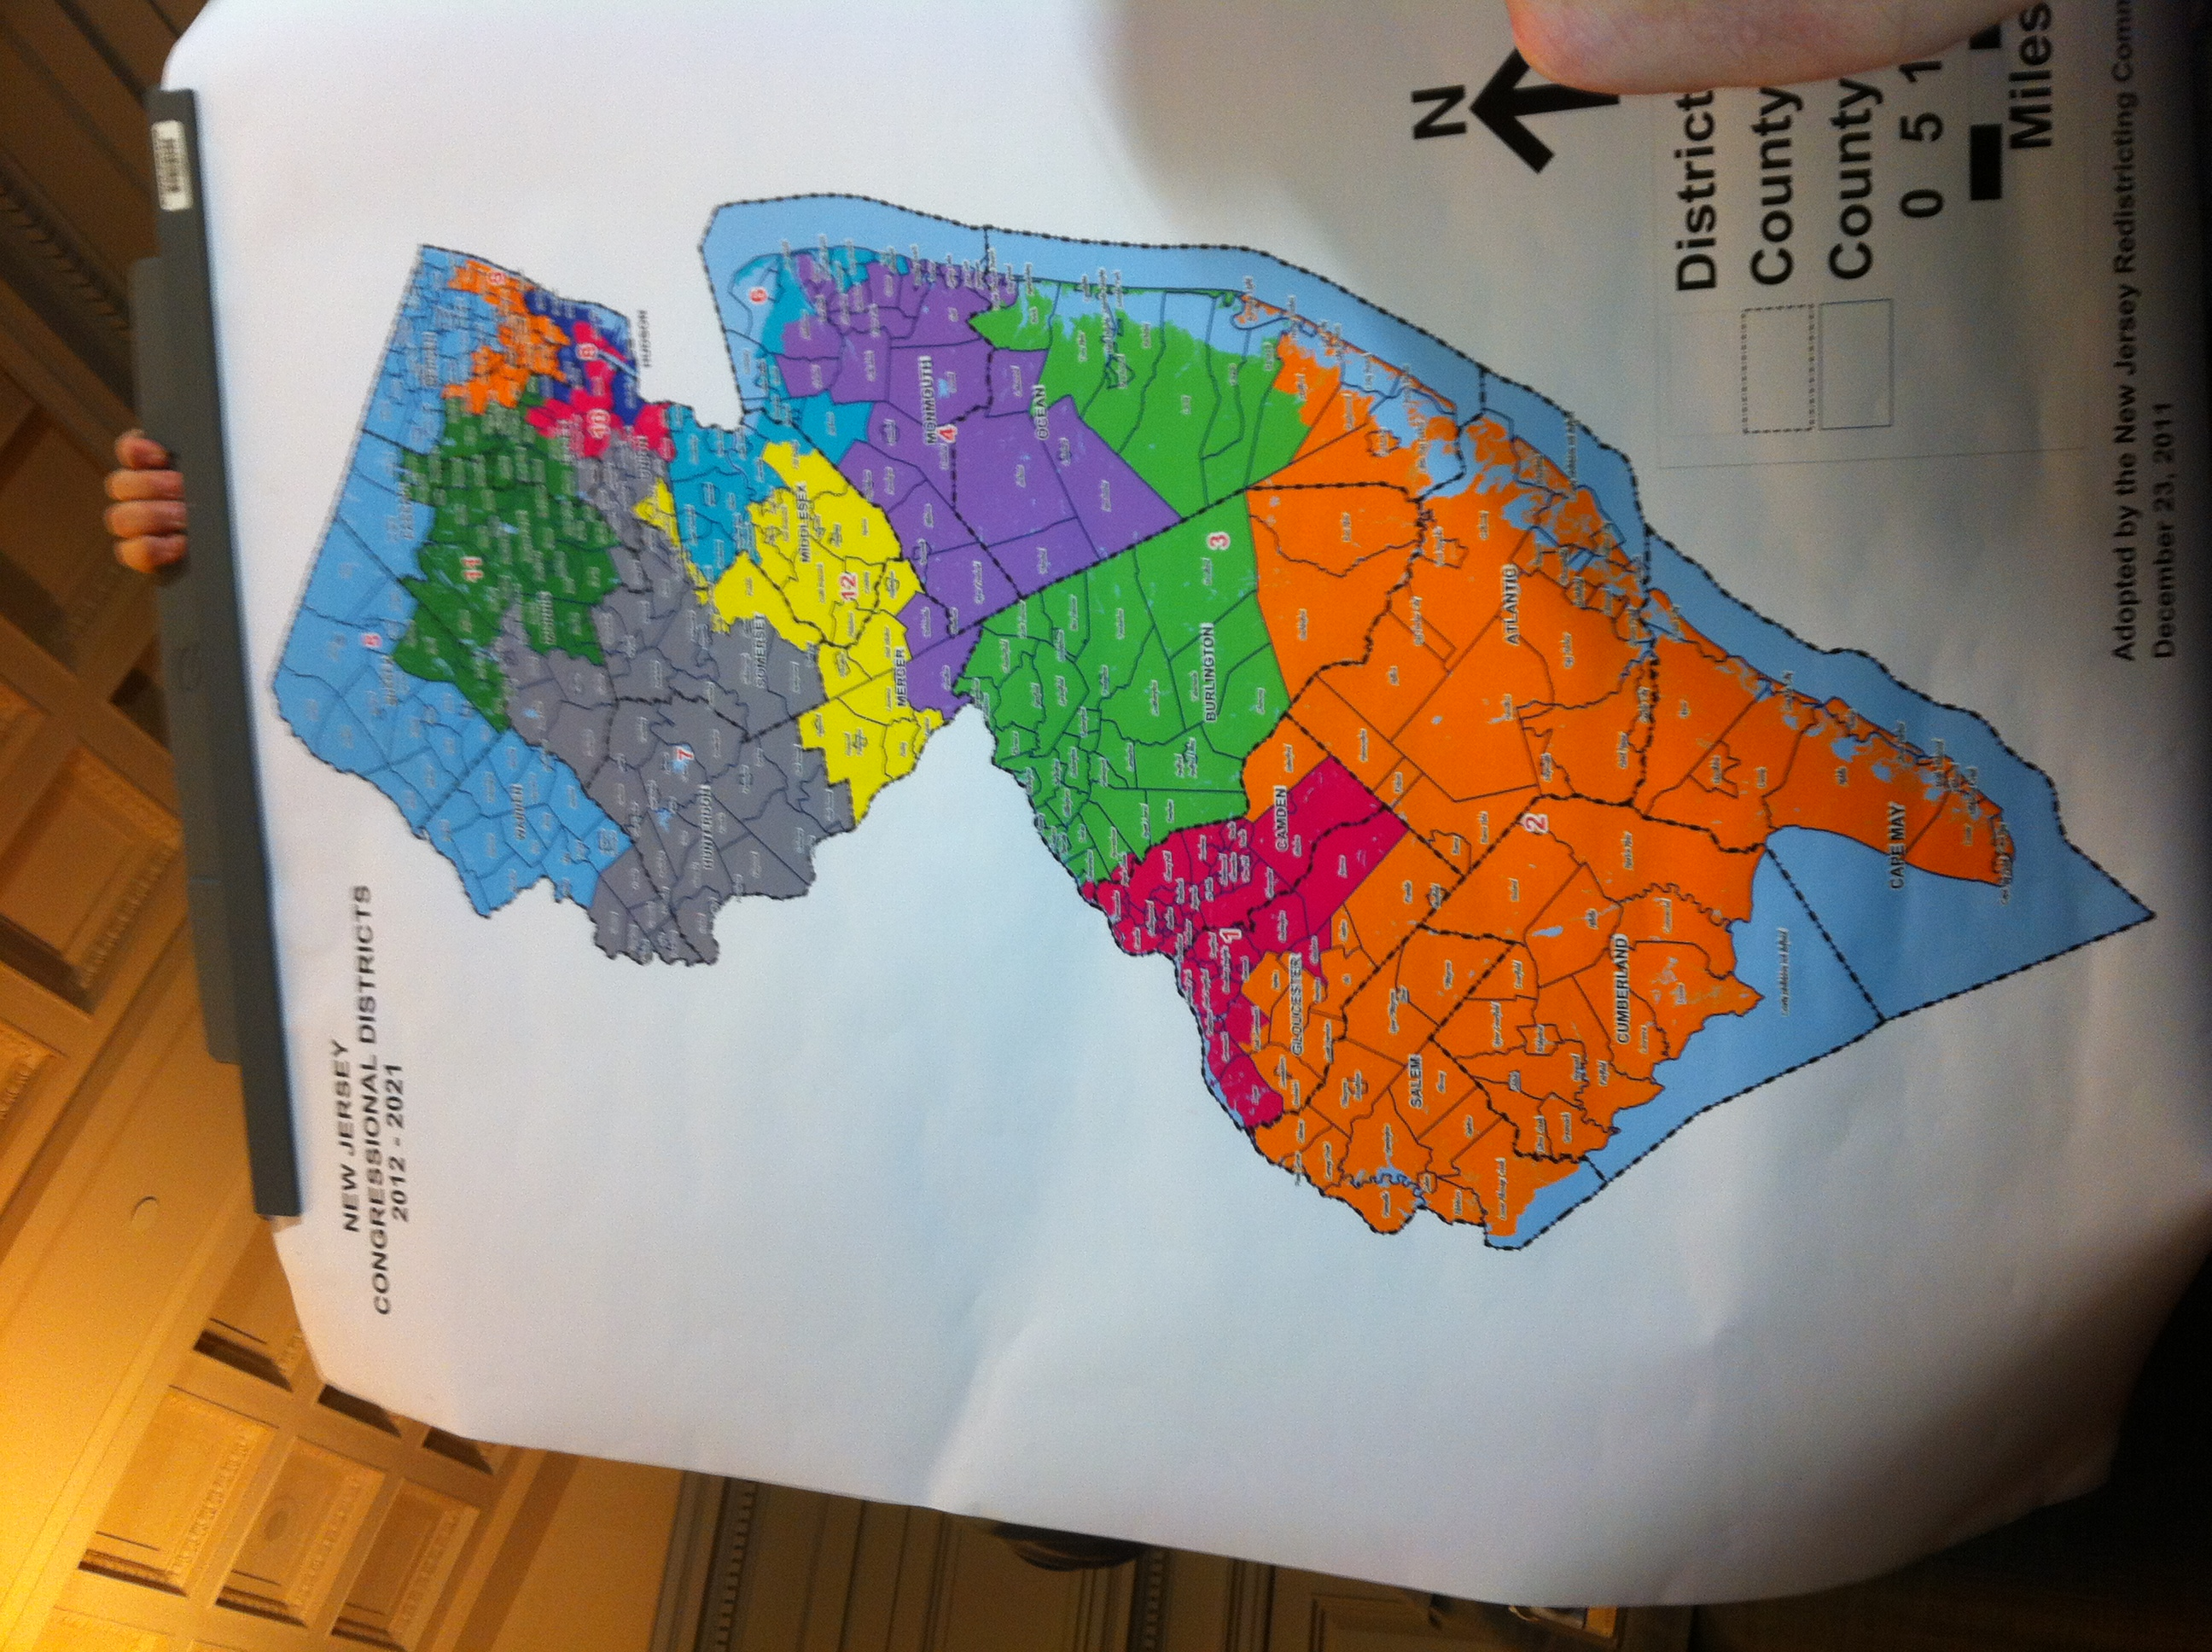 UPDATING LIVE from Redistricting: The New Map